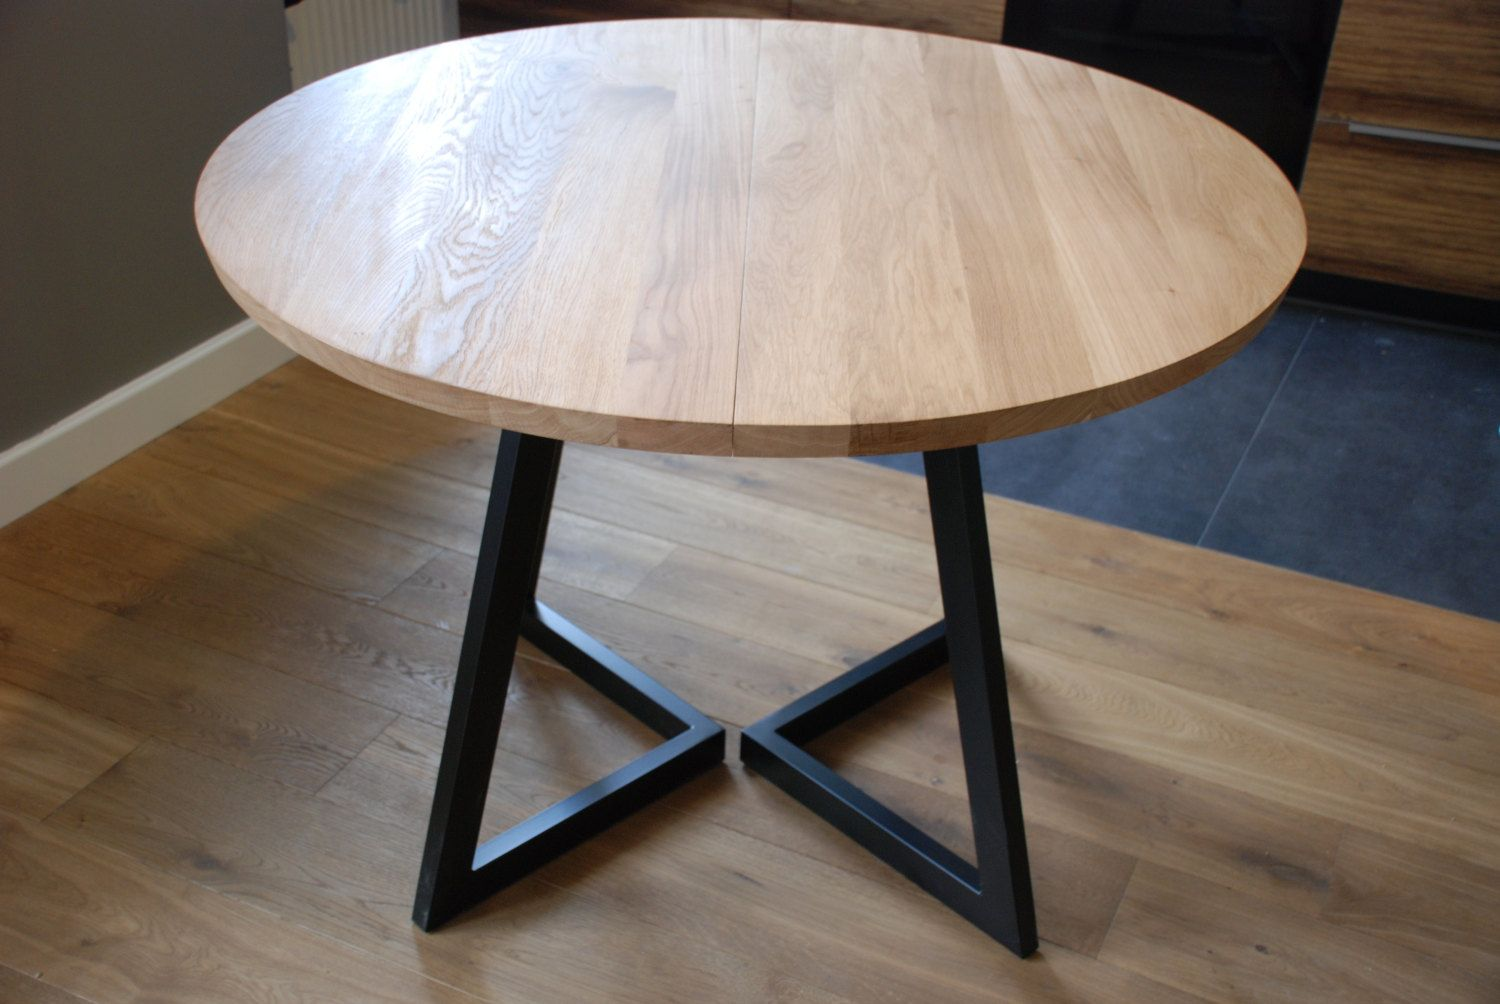 Mesa Redonda De Madera Extensible Extendable Round Table Modern Design Steel And Timber En